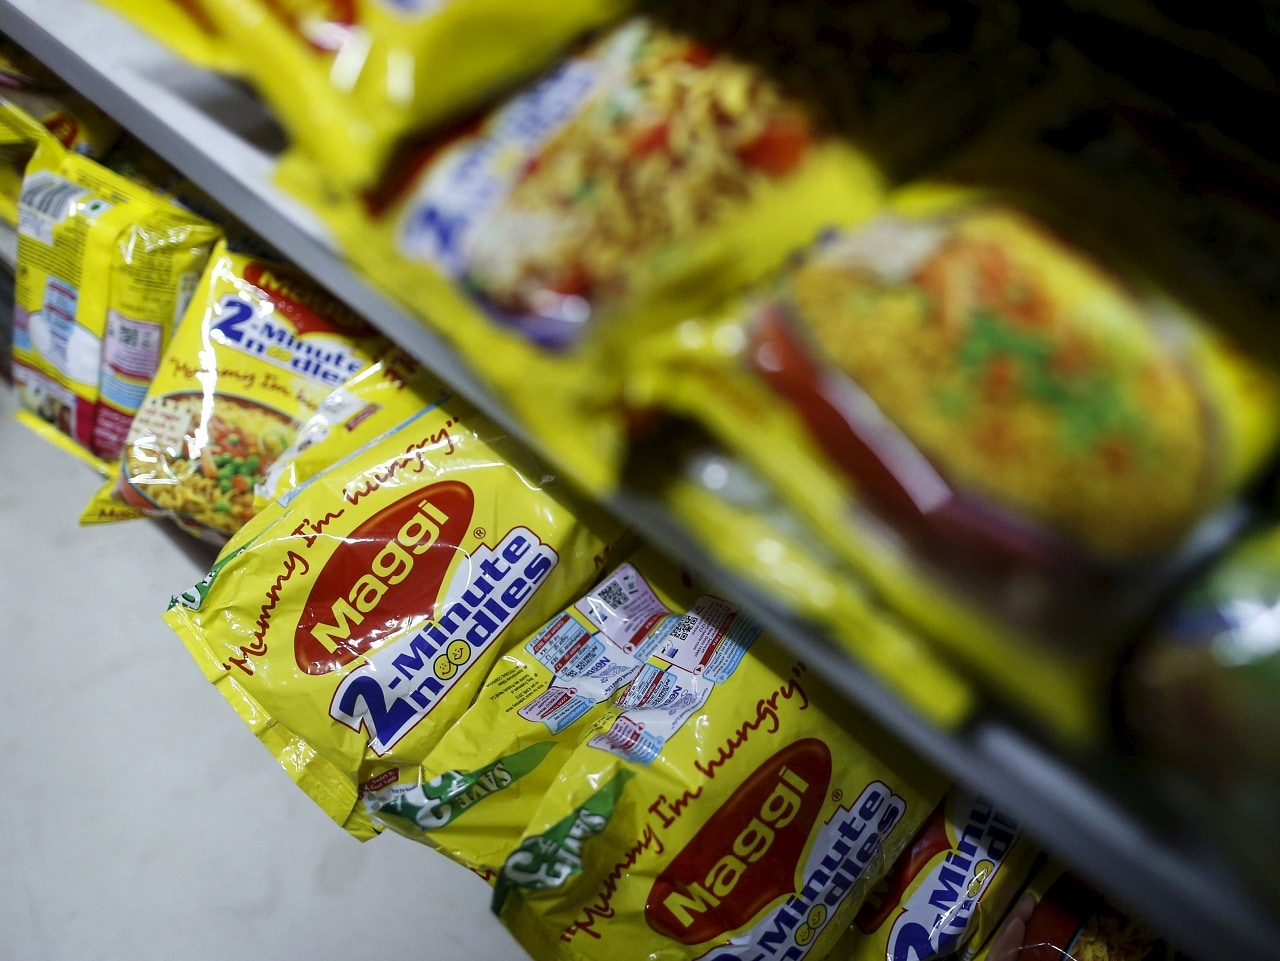 Nestle: The board announced that the company will commence construction of its ninth factory in Gujarat for Maggi Noodles. The FMCG major reported an increase of 10.83 percent in net profit to Rs 437.84 crore. (Image: Reuters)